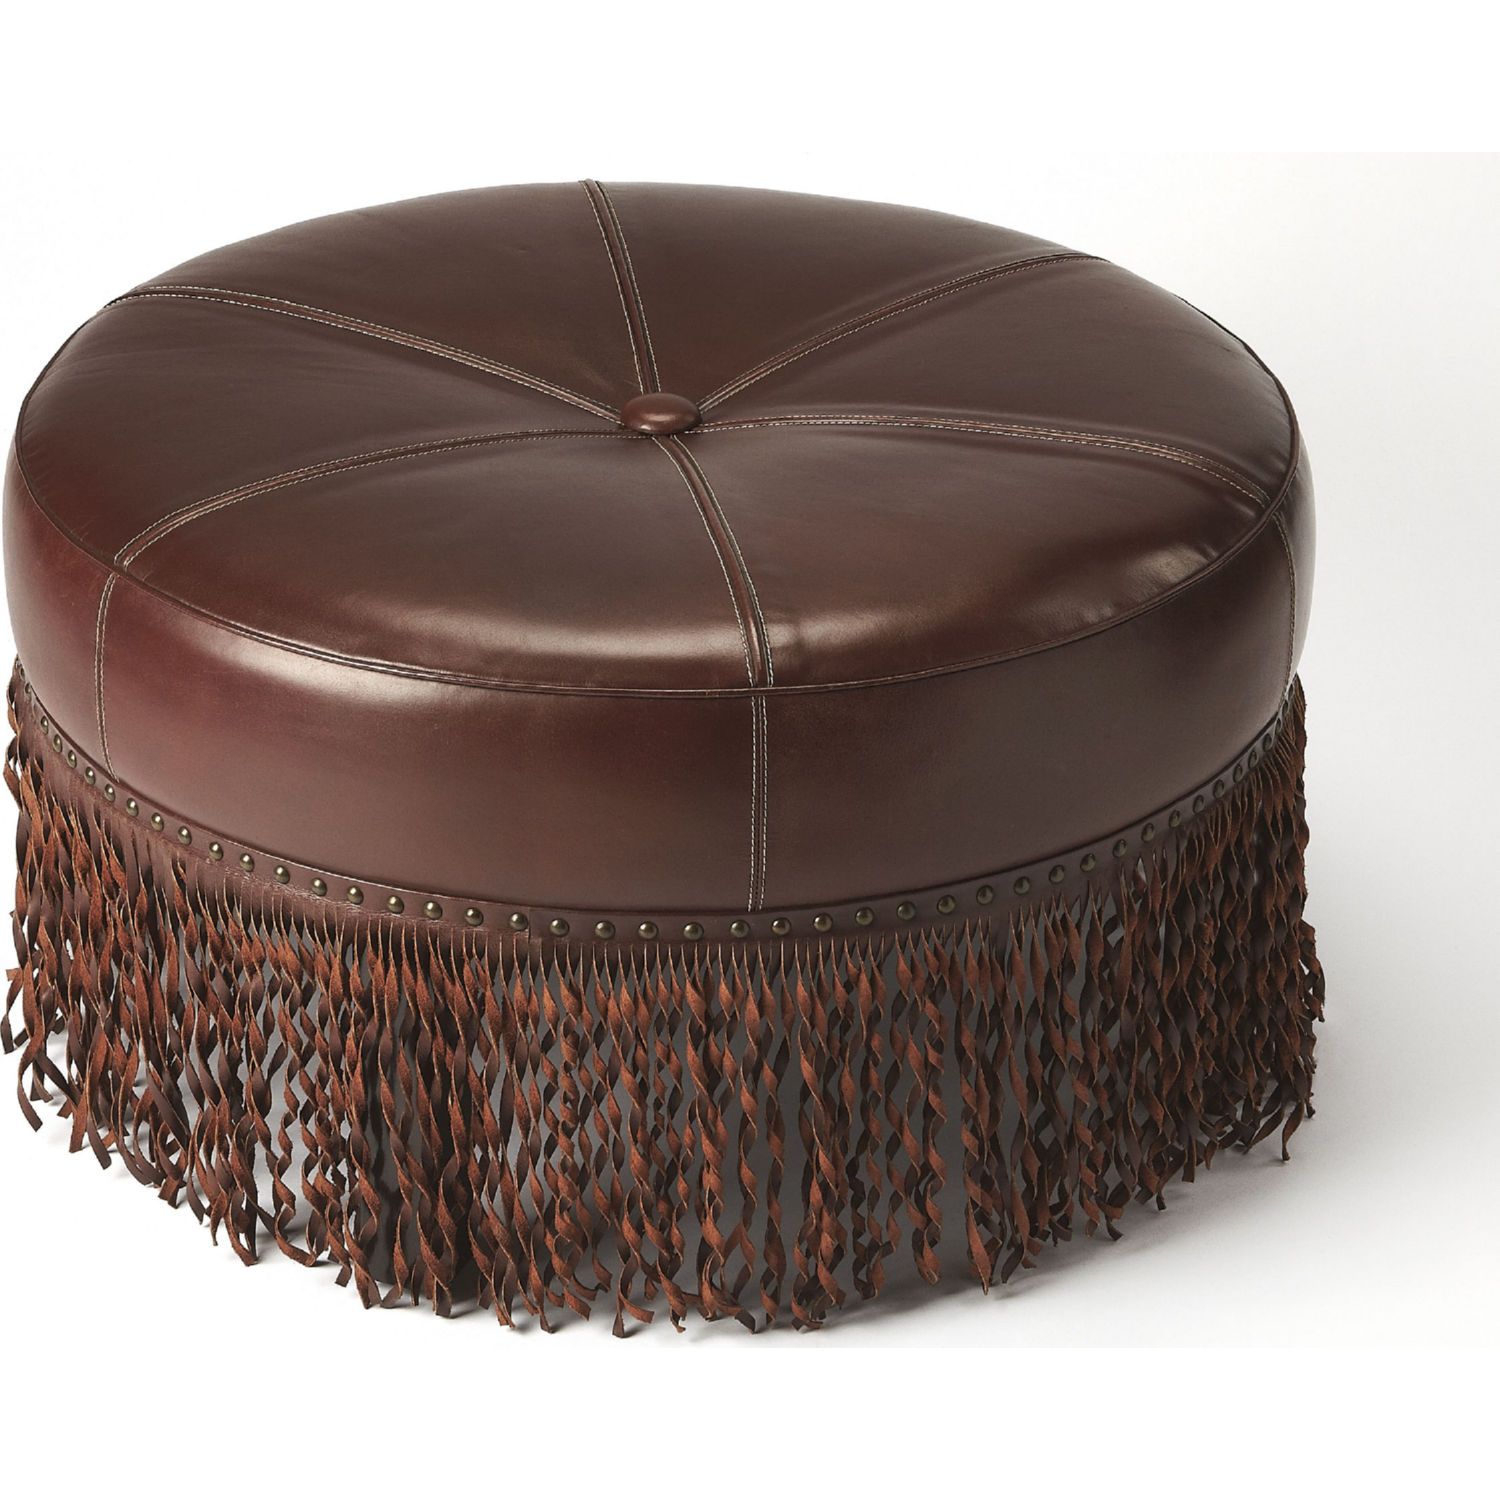 Brilliant Alina Round Cocktail Ottoman In Tufted Chestnut Brown Leather By Butler Specialty Beatyapartments Chair Design Images Beatyapartmentscom